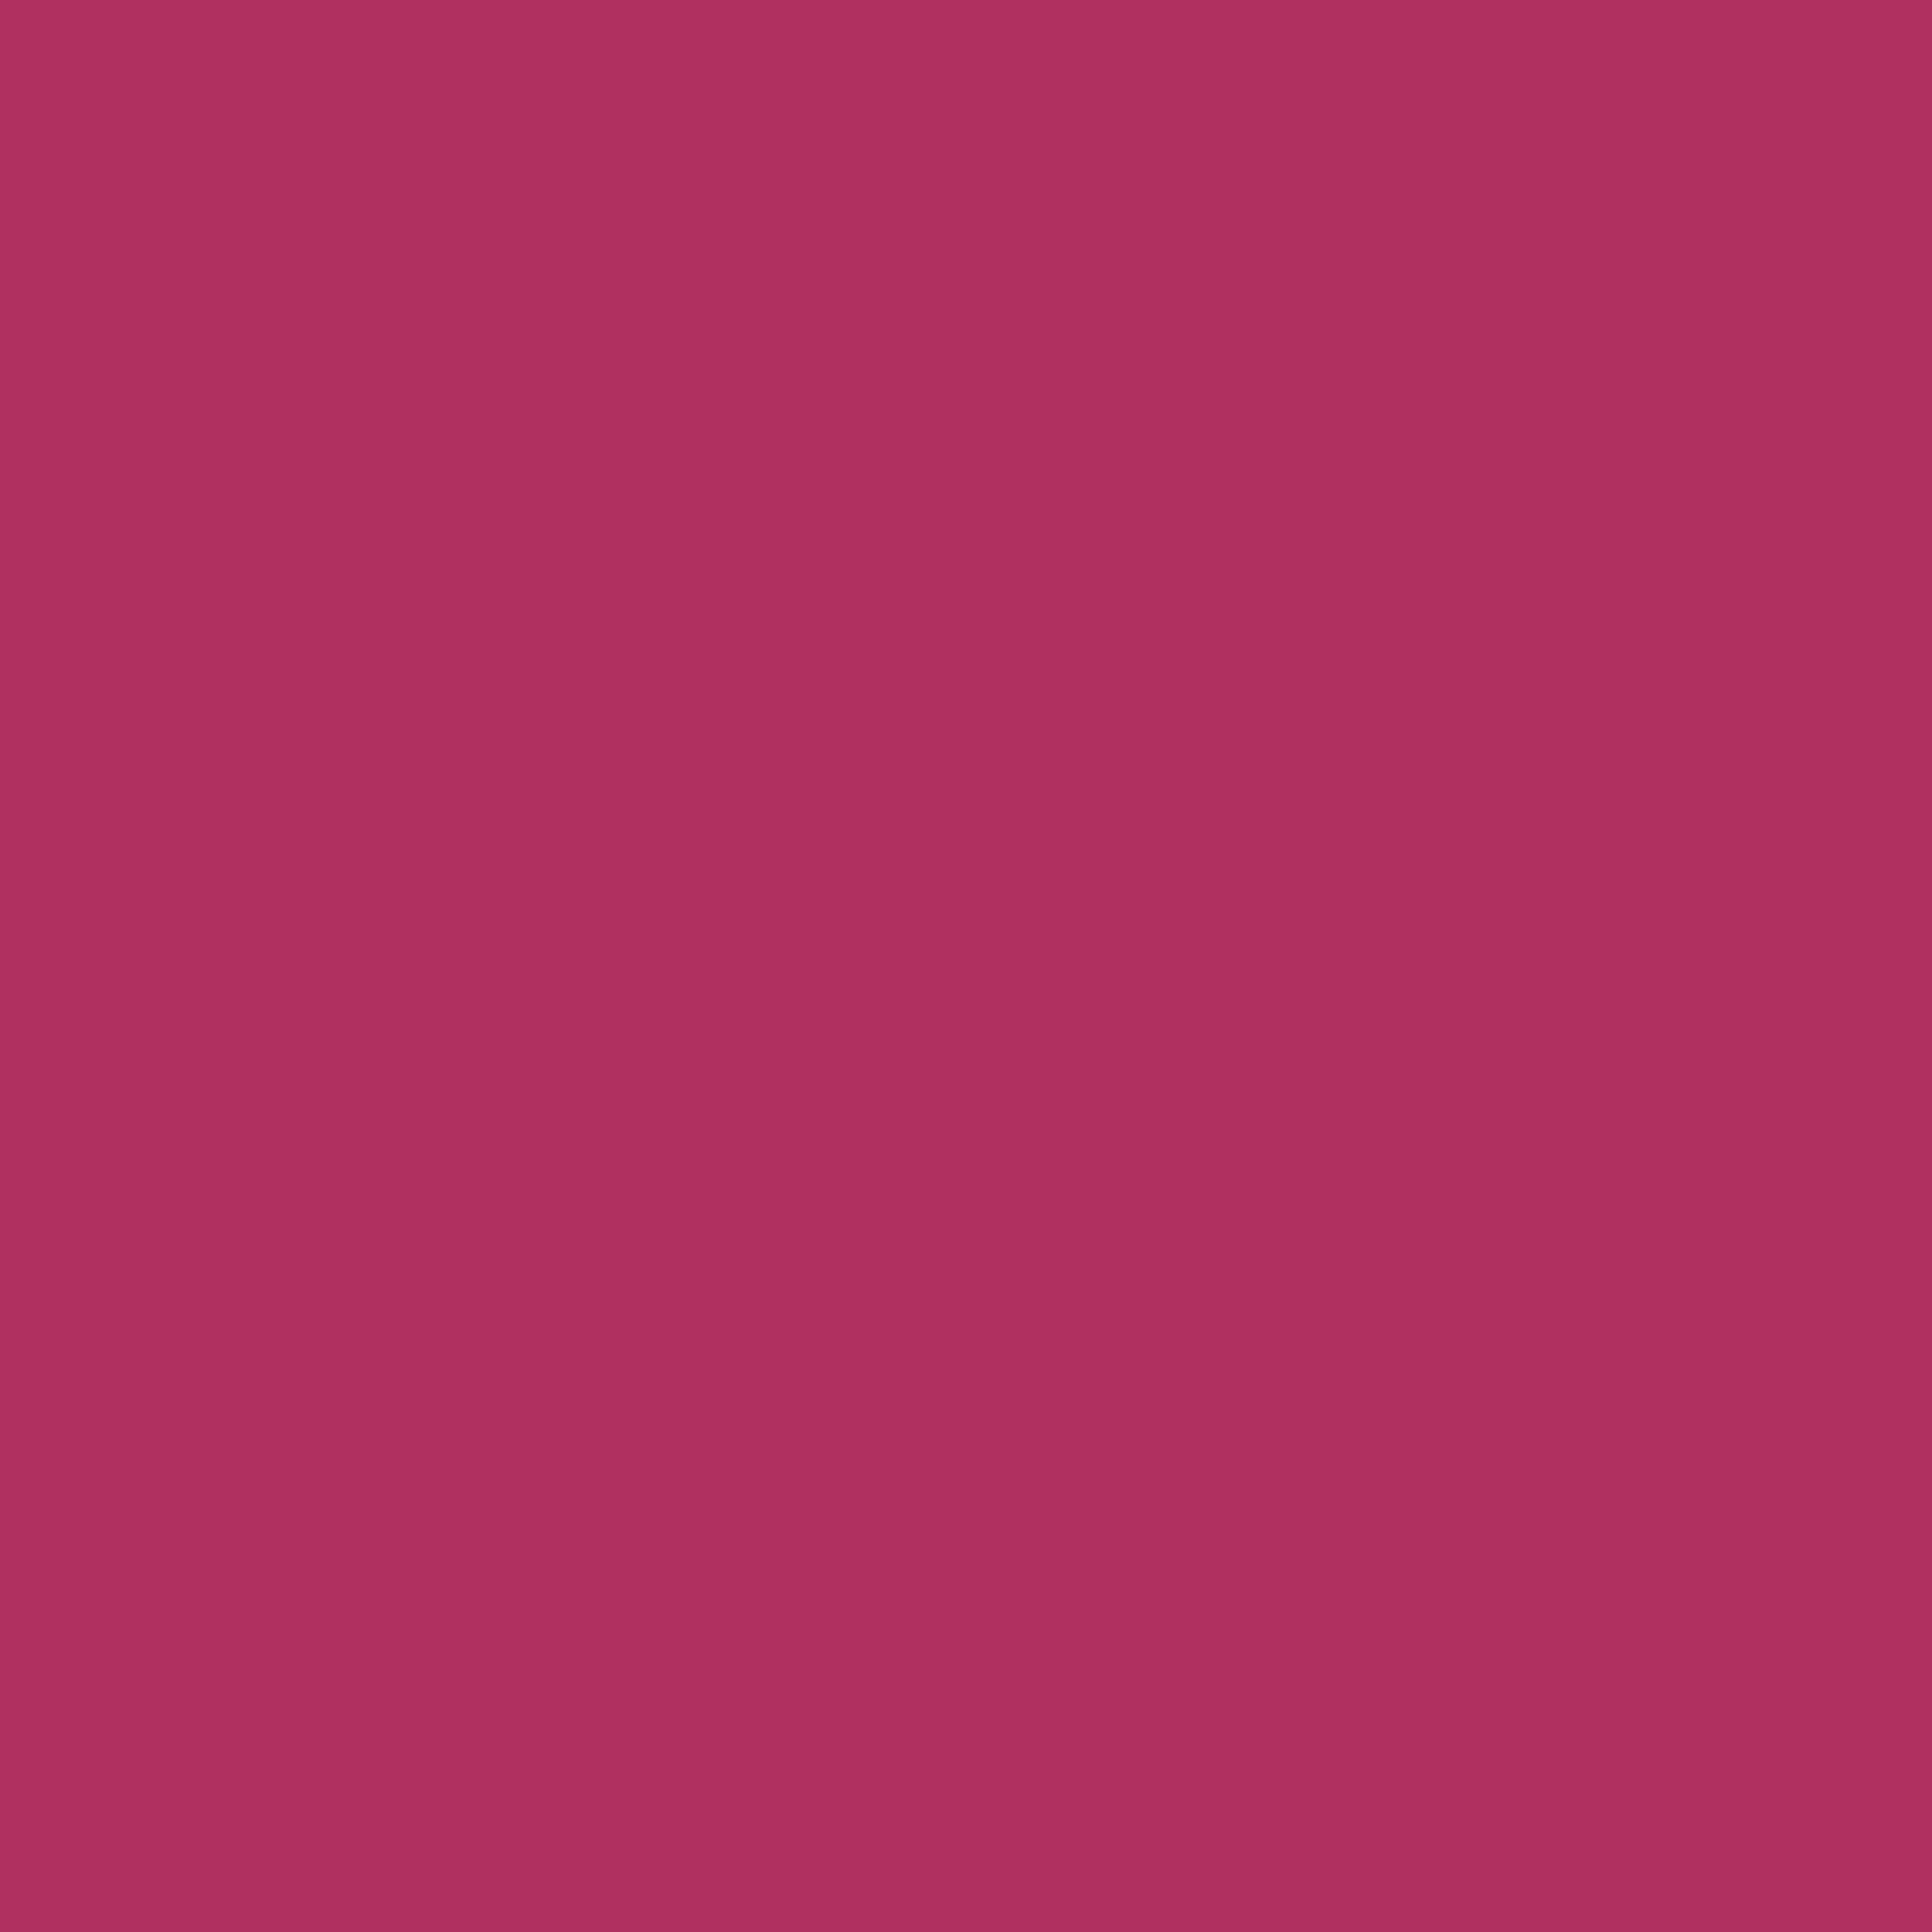 3600x3600 Rich Maroon Solid Color Background